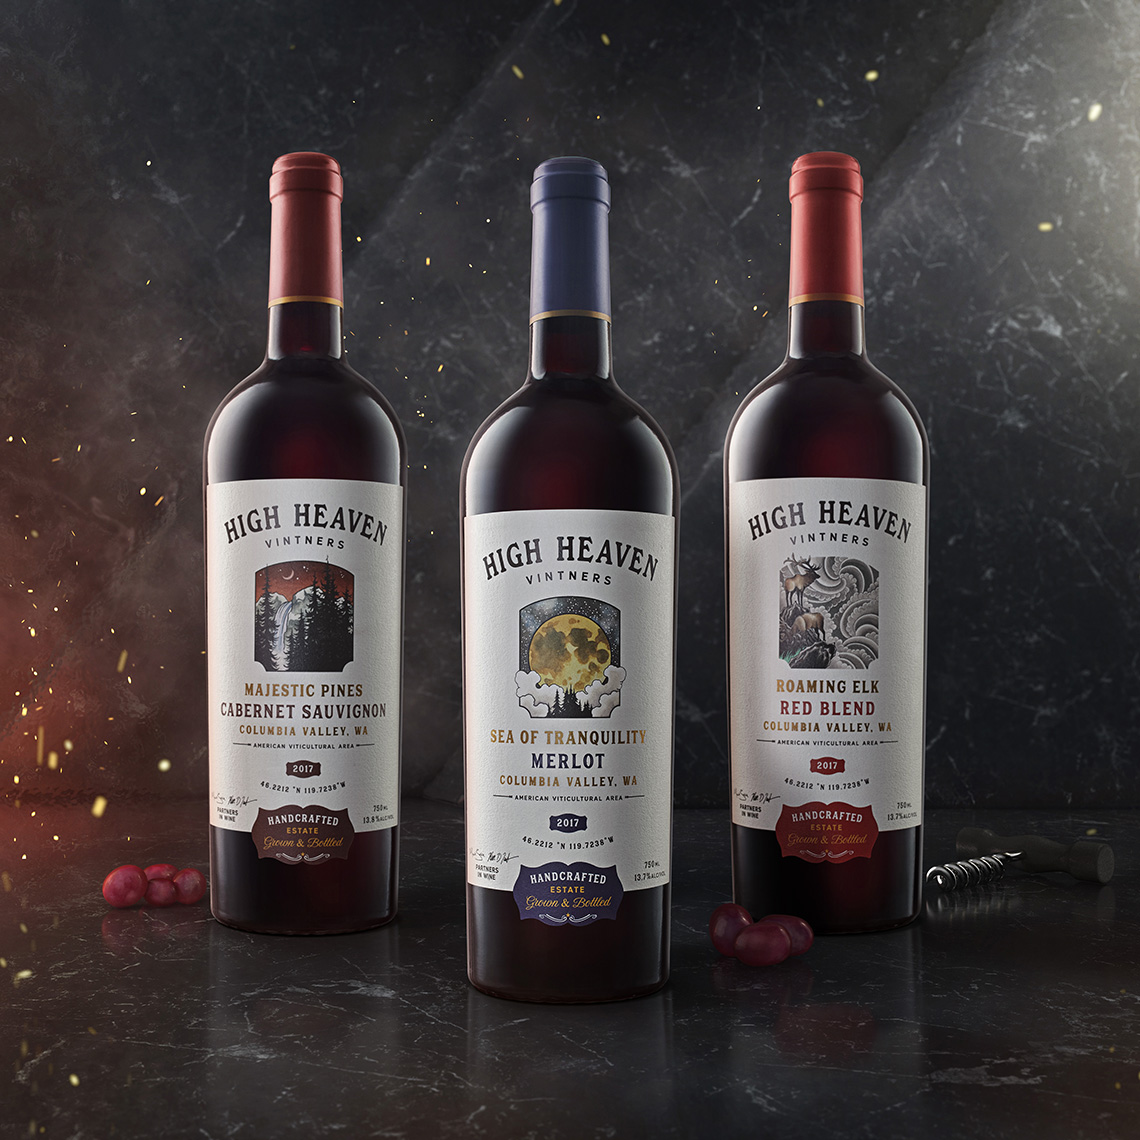 New-York-liquid-photography-drink-photography-high-heven-wine